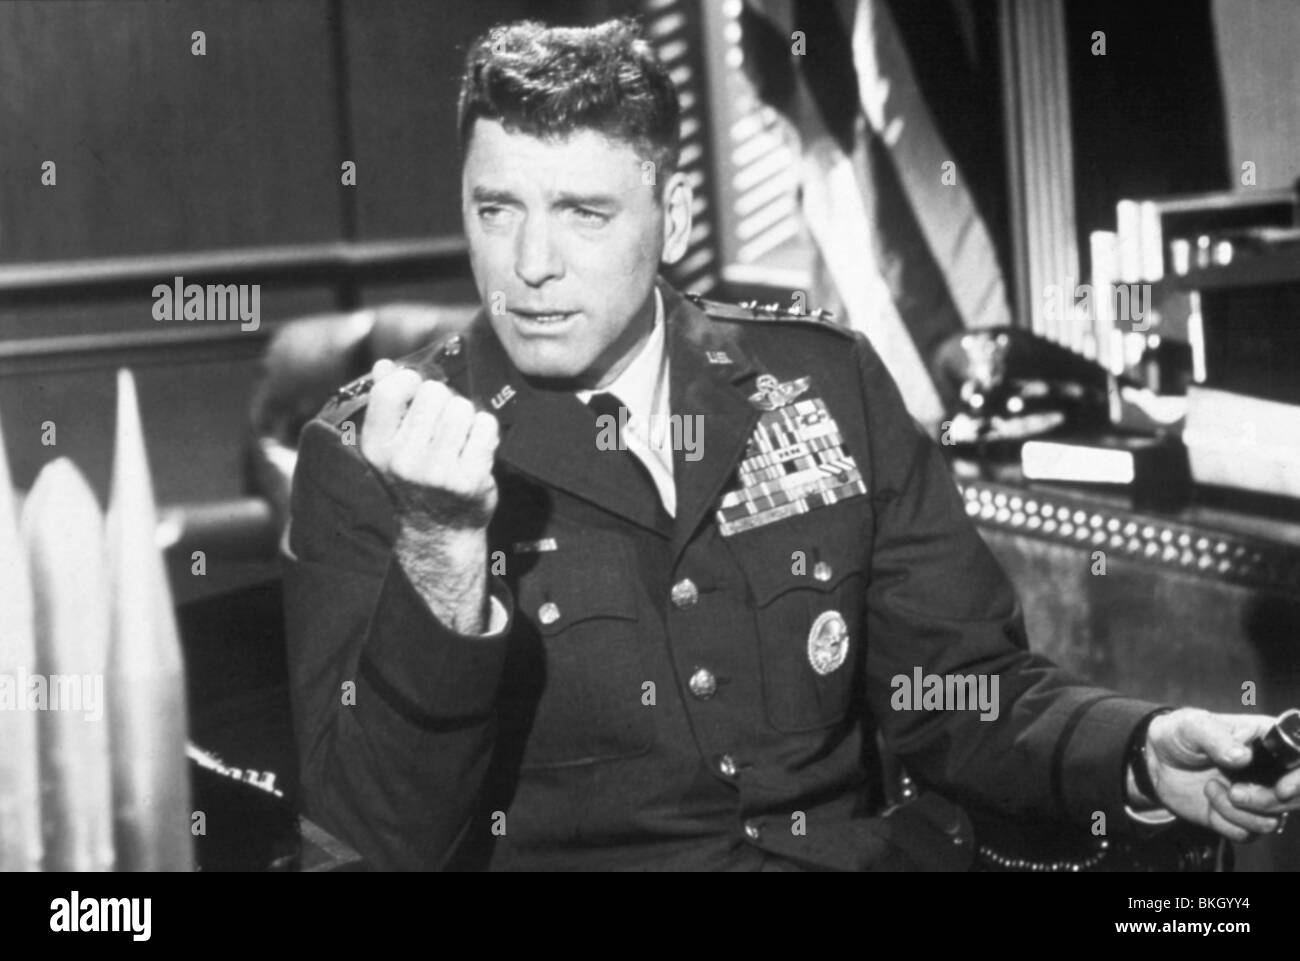 SEVEN DAYS IN MAY (1964) 7 DAYS IN MAY (ALT) BURT LANCASTER SDMY 001 - Stock Image